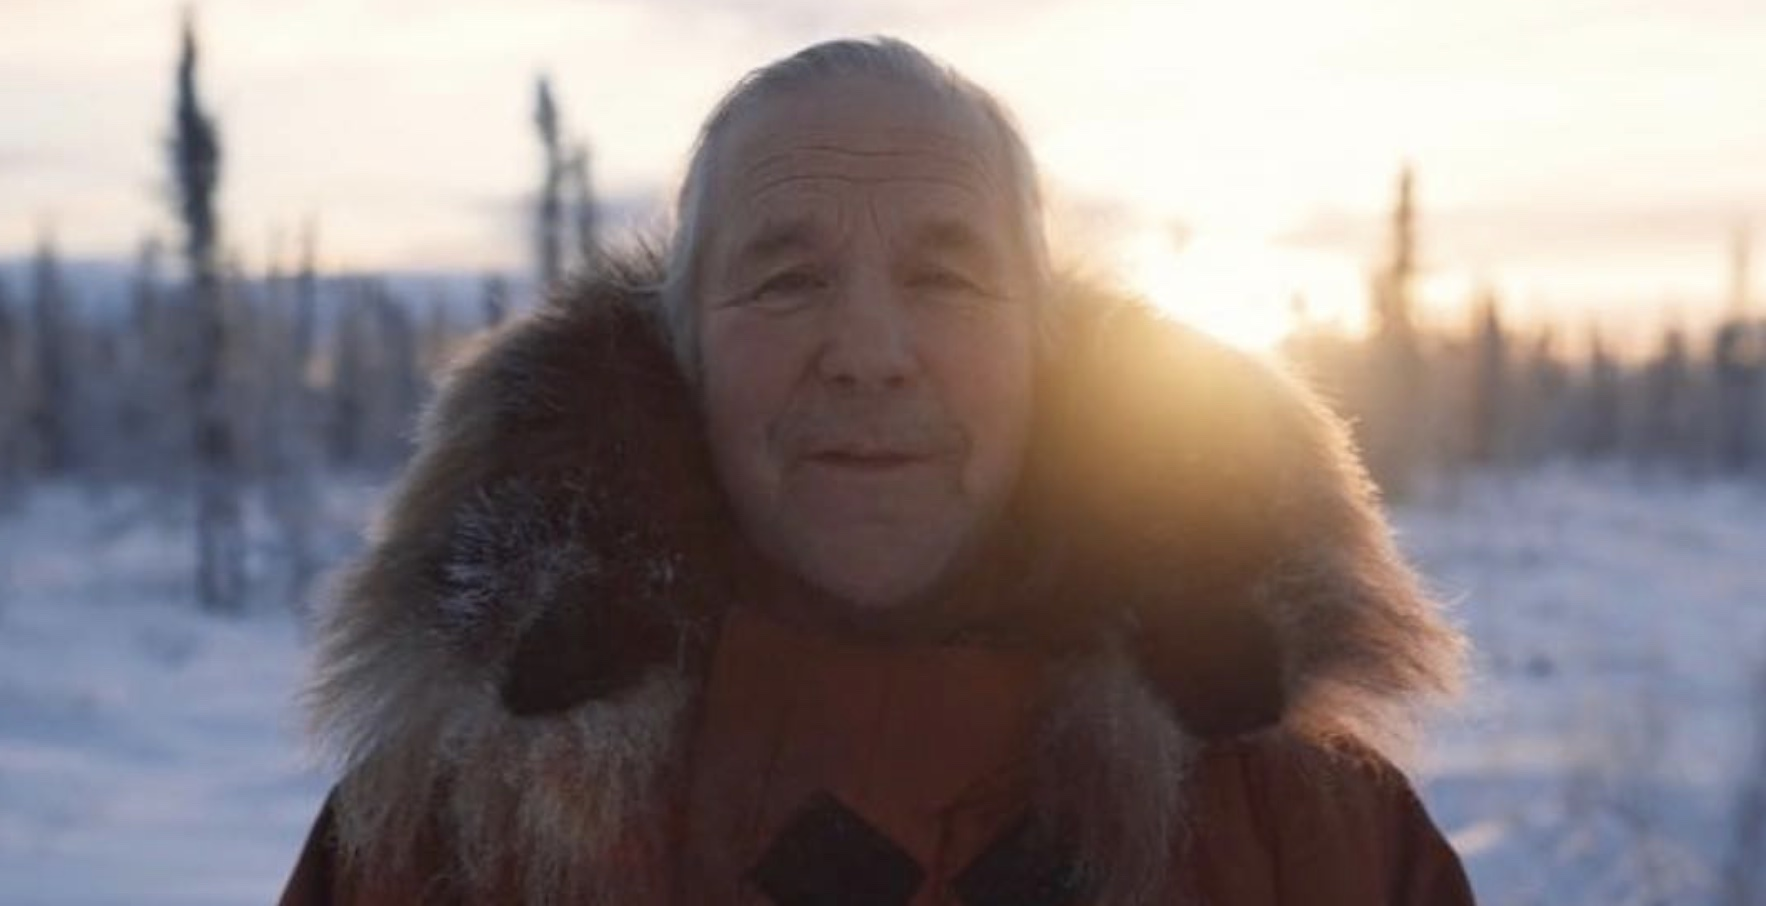 Yukon Men, Stan Zuray-https://www.instagram.com/p/BuEiBmBhipz/